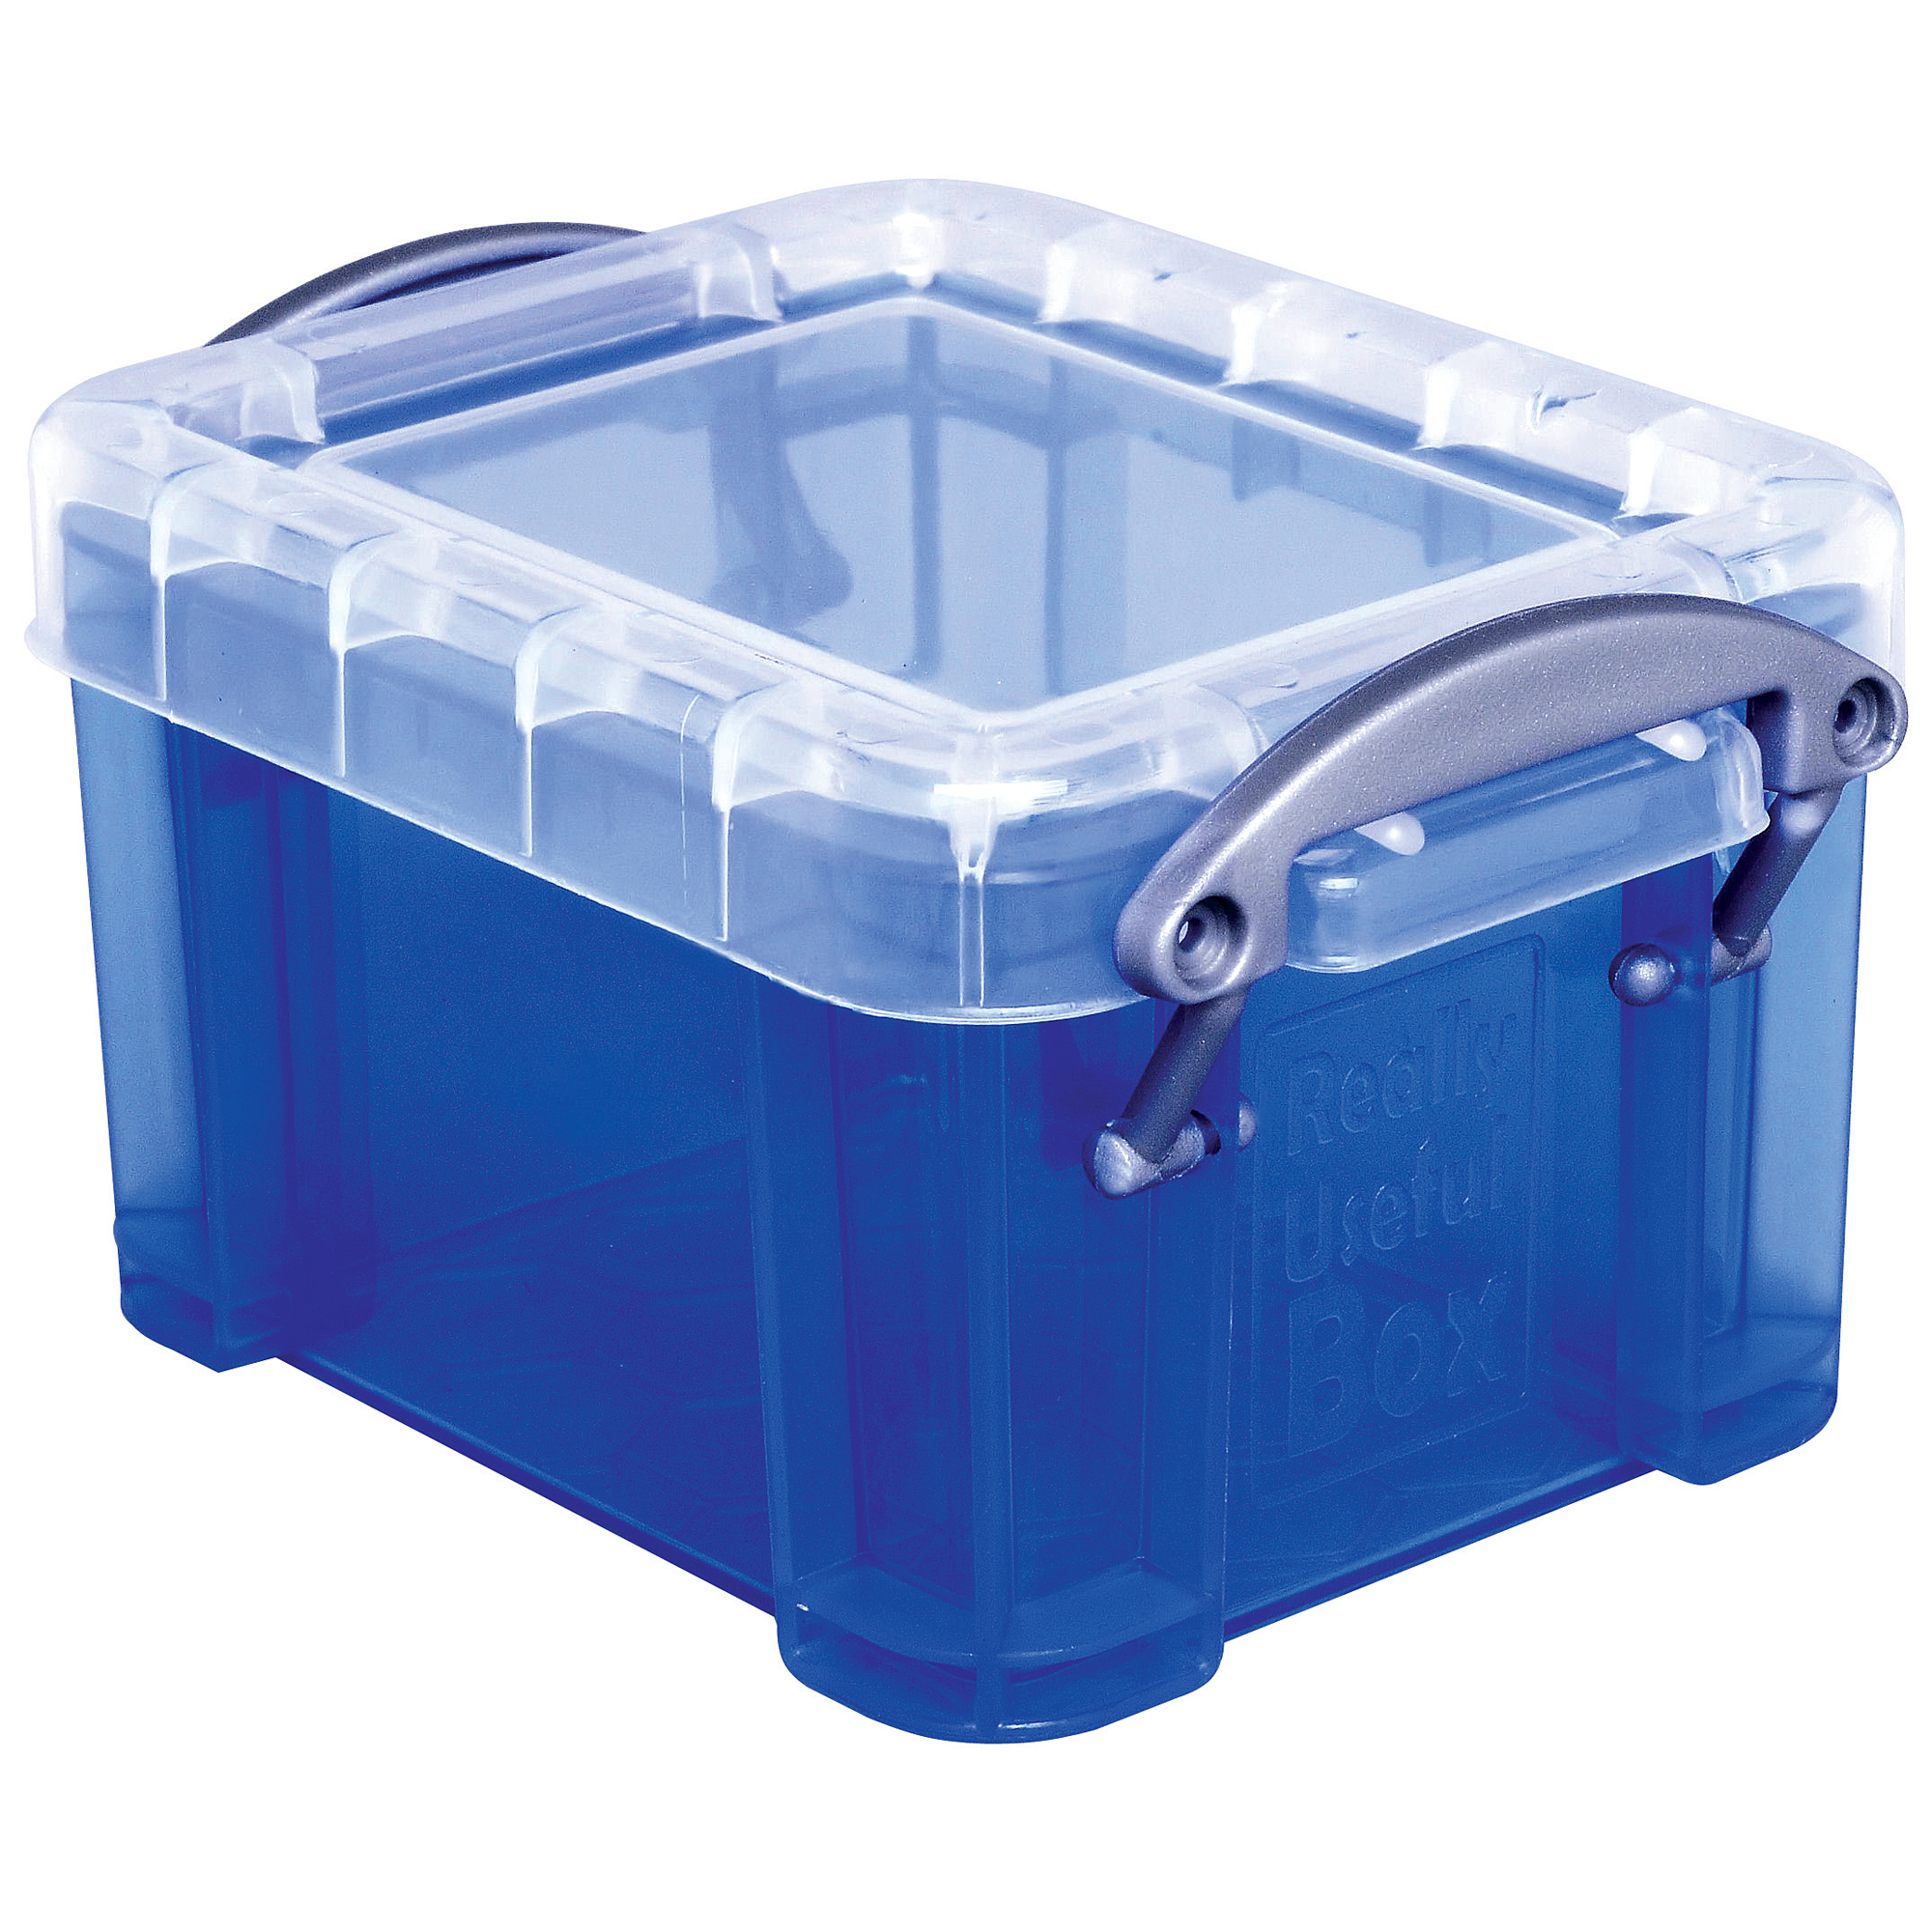 """Really Useful Box® Plastic Storage Container With Built-In Handles And Snap Lid, 0.14 Liter, 3 1/4"""" x 2 1/2"""" x 2"""", Blue"""